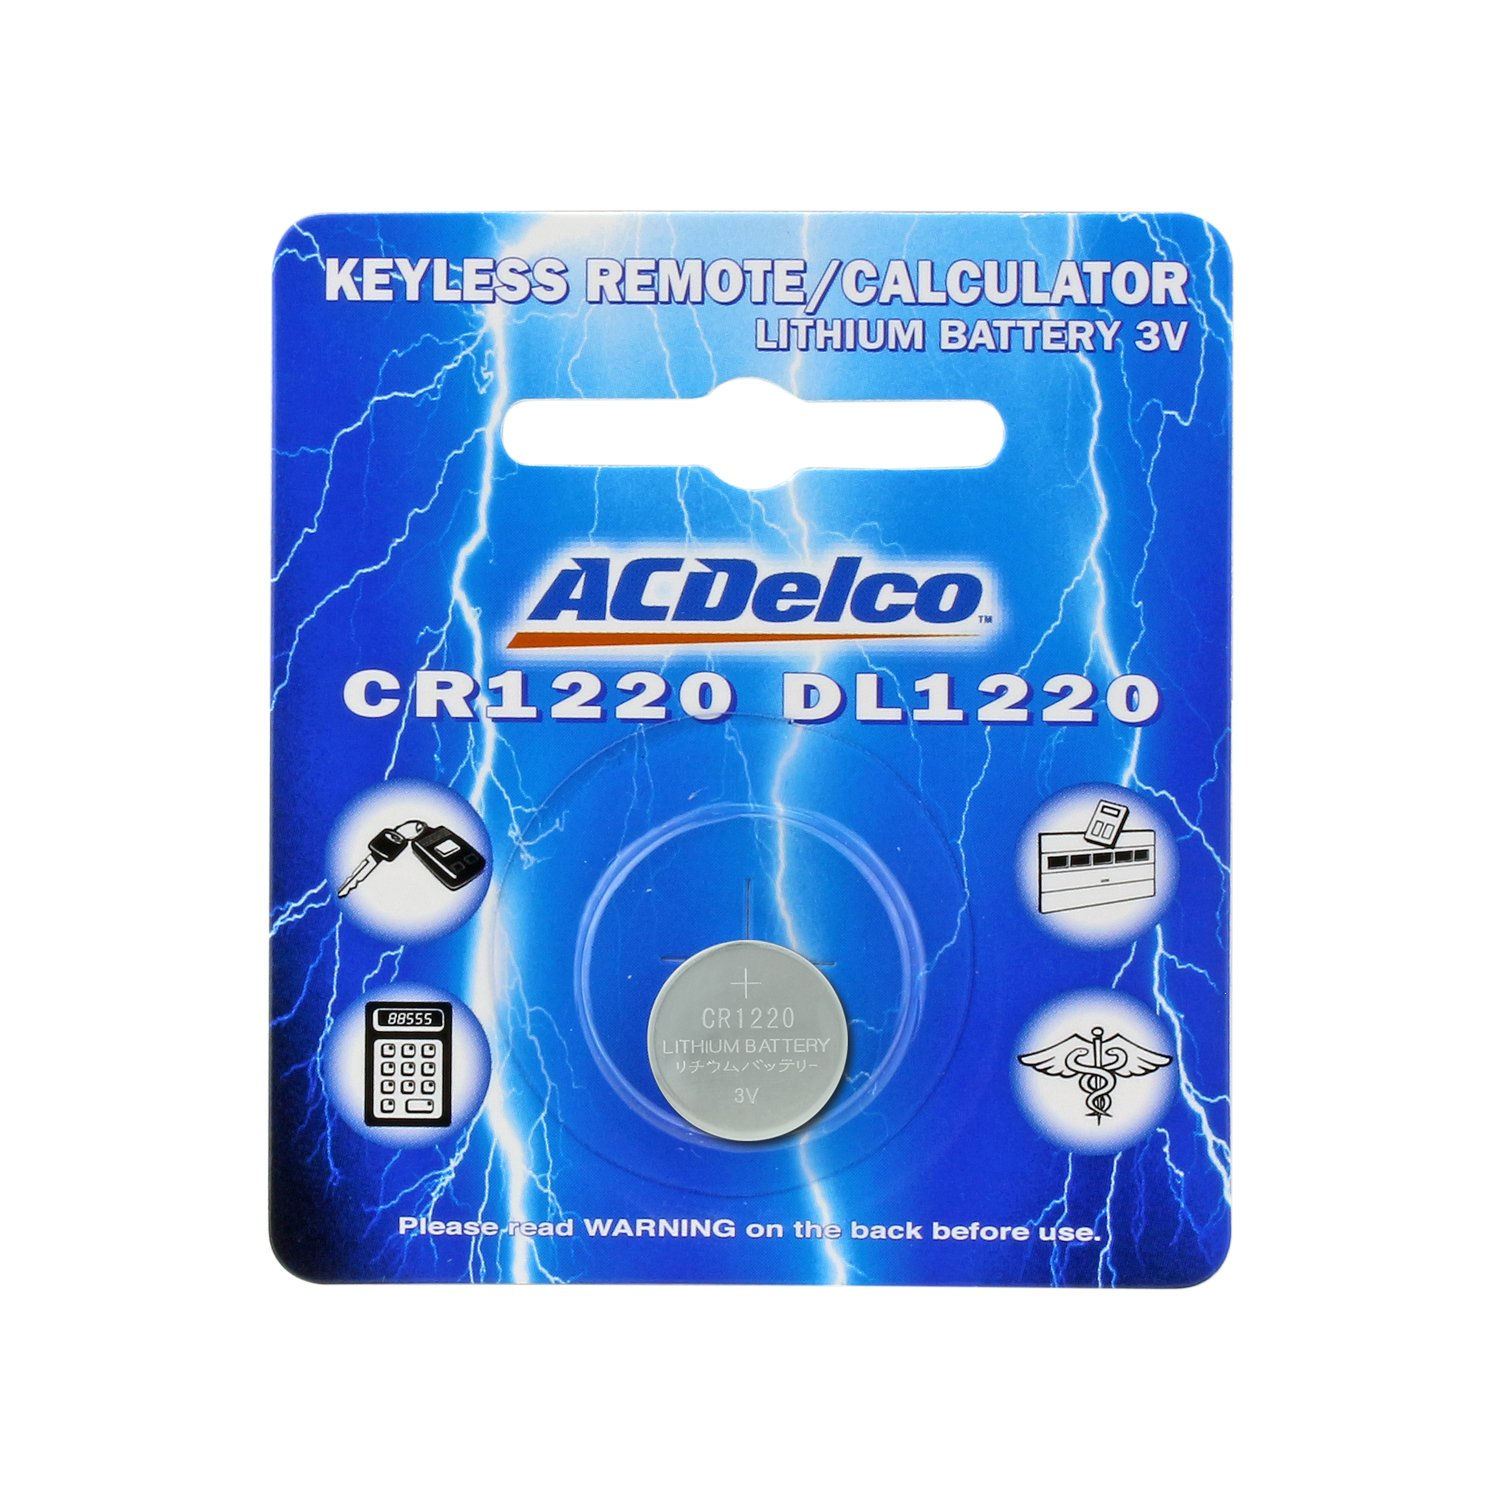 ACDelco Volt High Performance Lithium Watch Button Cell Battery, Cr1220-3